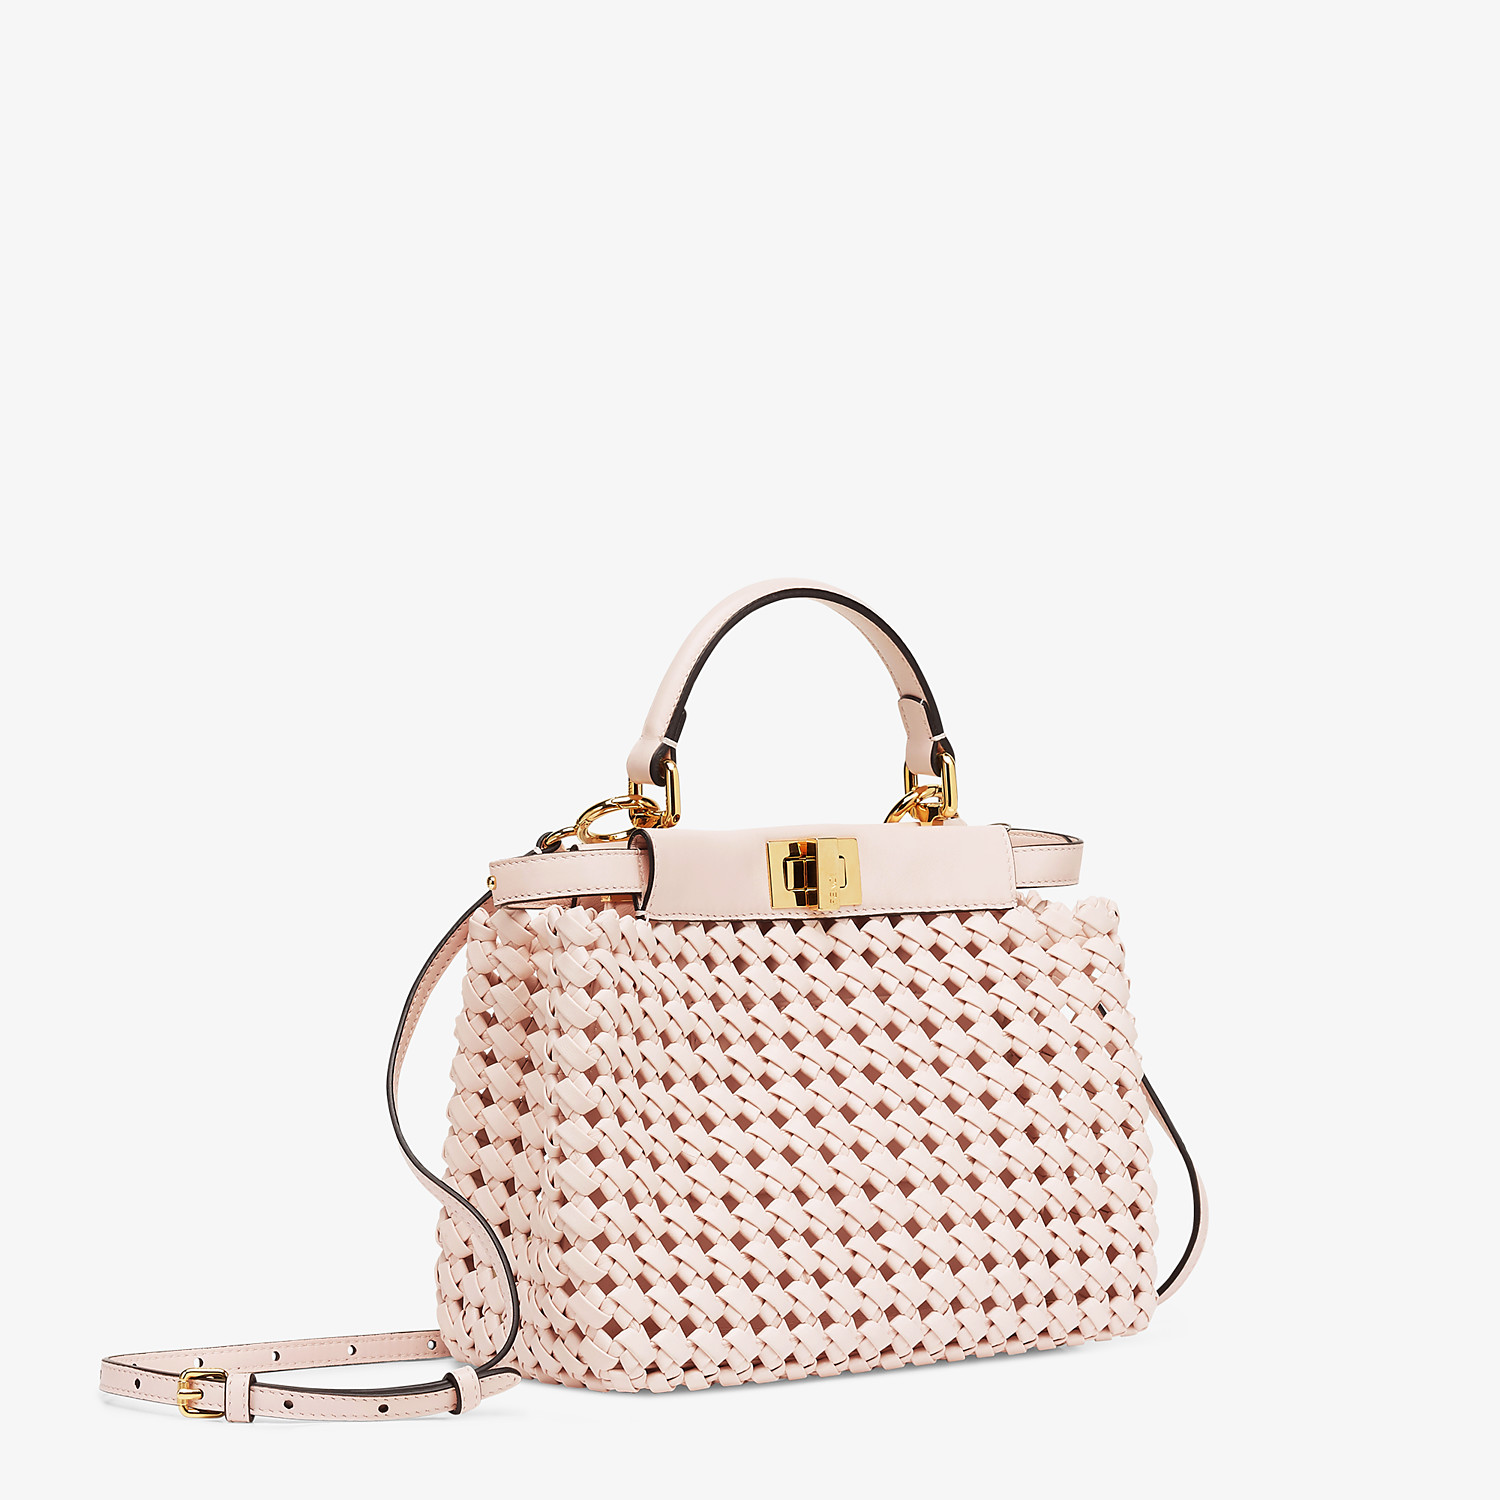 FENDI PEEKABOO ICONIC MINI - Pink leather interlace bag - view 2 detail